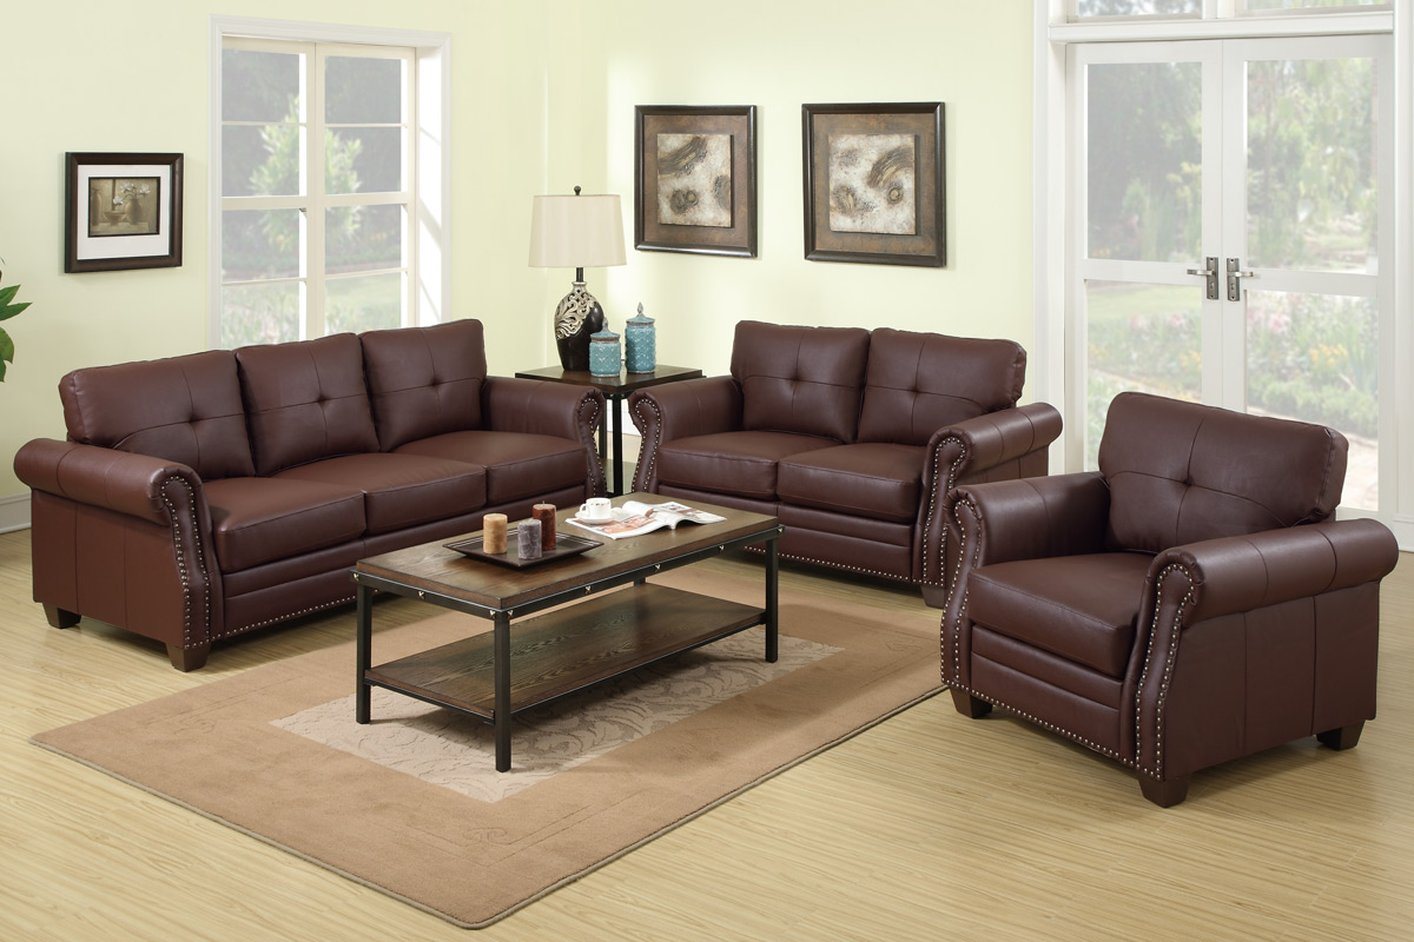 Poundex Baron F7799 Brown Leather Sofa And Loveseat Set. Bay Window Treatment Ideas Living Room. Living Room With No Fireplace. Create Your Own Living Room Colors. Small Living Room Sofas Furniture. Cosy Living Room With Log Burner. Dark Gray Living Room Rug. Pictures For Living Room Walls. Living Room And Bedroom Paint Ideas